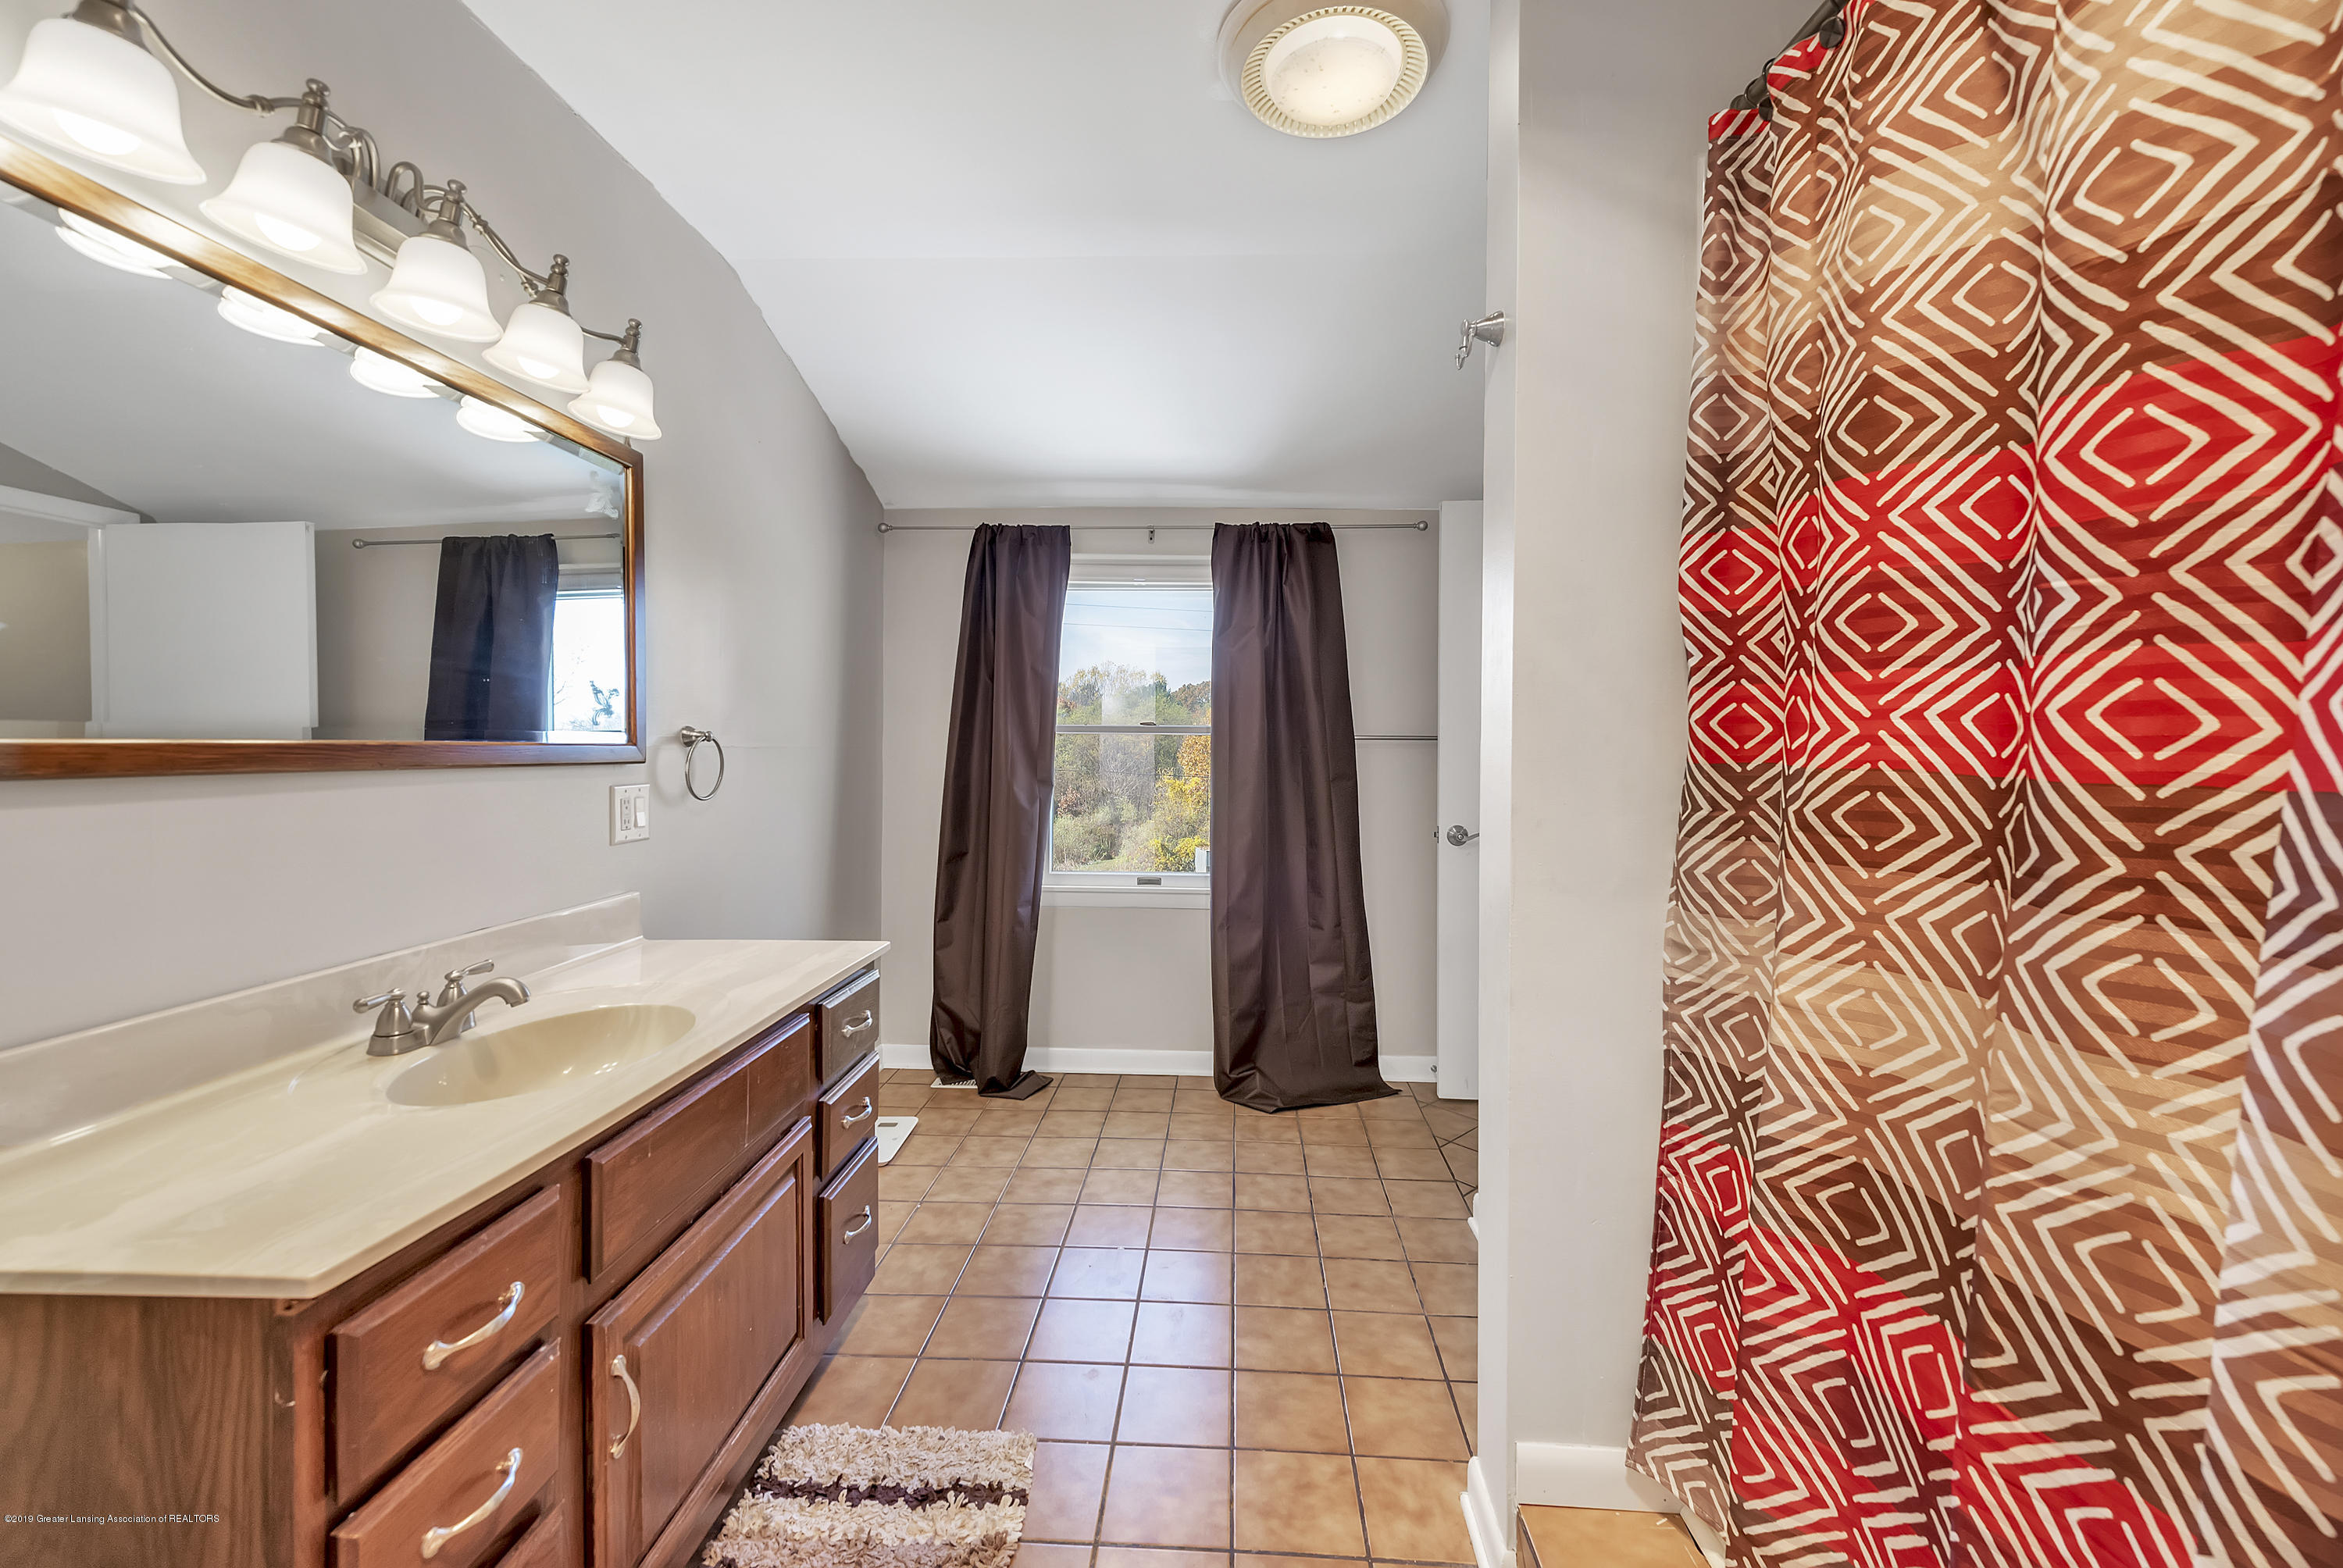 8700 Abbey Rd - 8700-Abbey-Rd-WindowStill-Real-Estate-Ph - 16